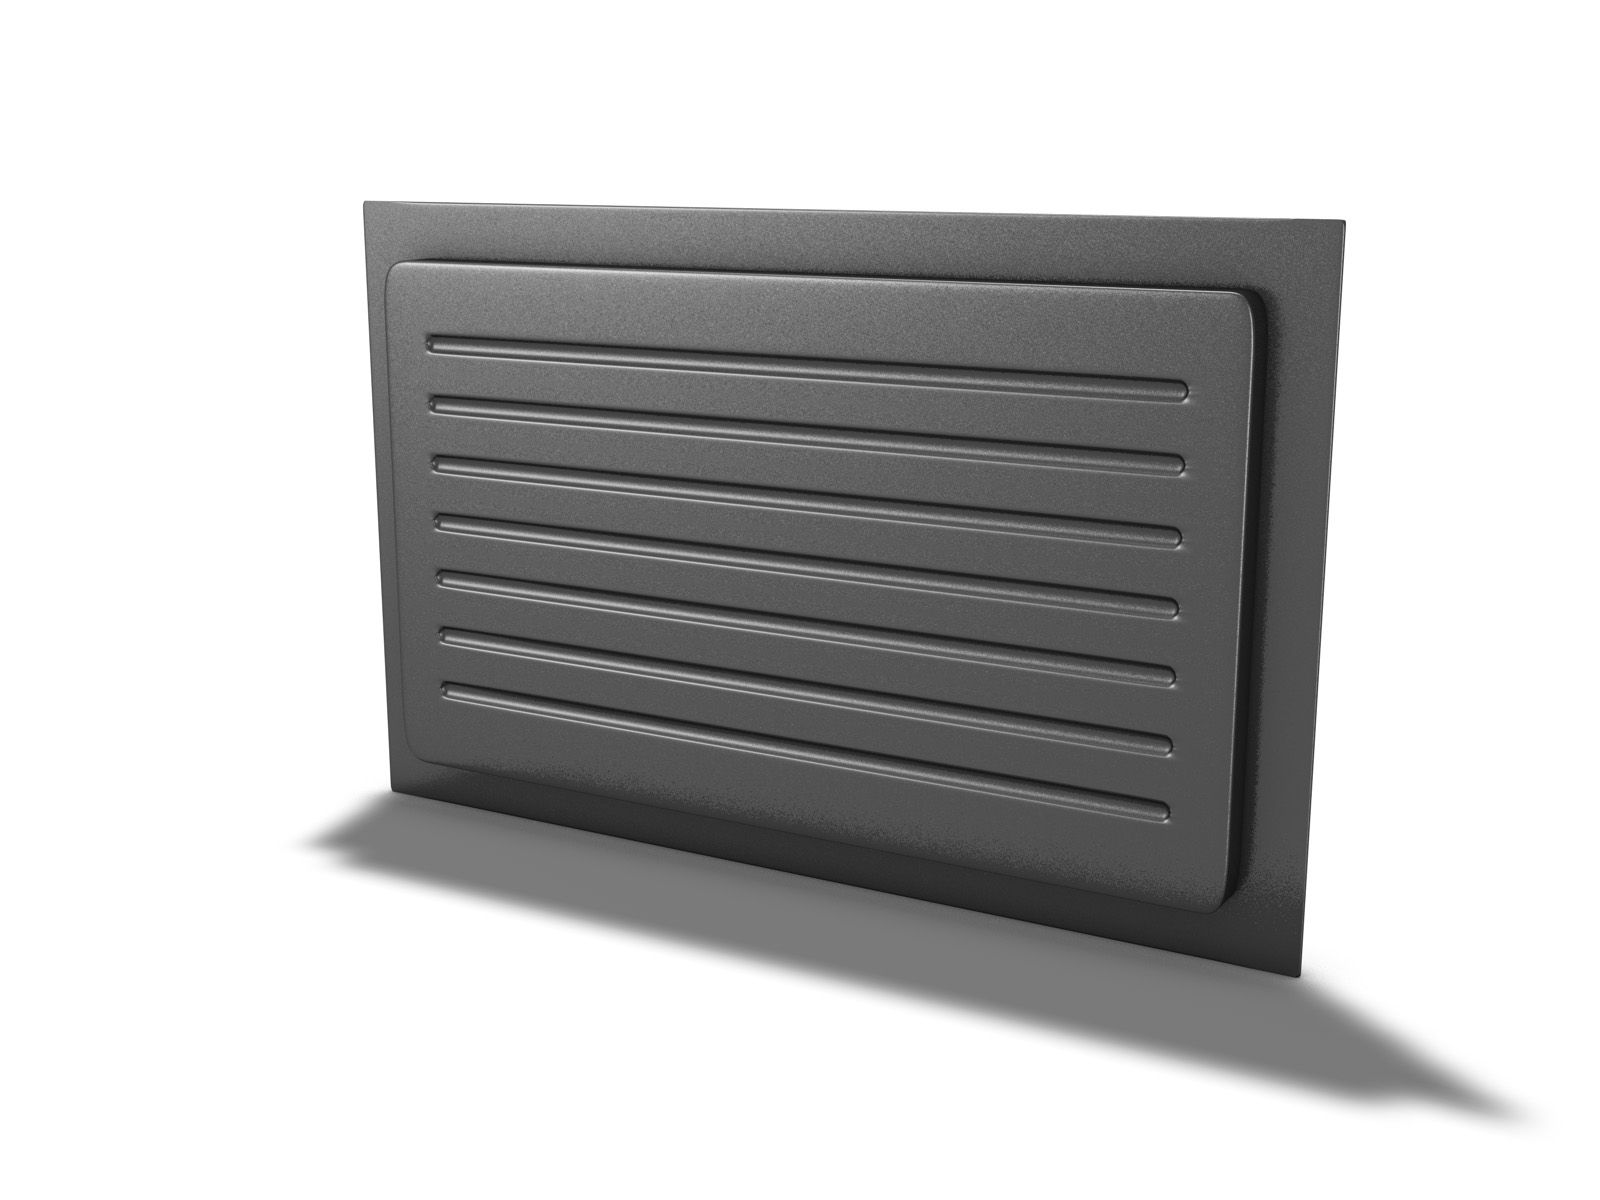 Small Outward Mounted Vent Cover Outside Dimensions 10